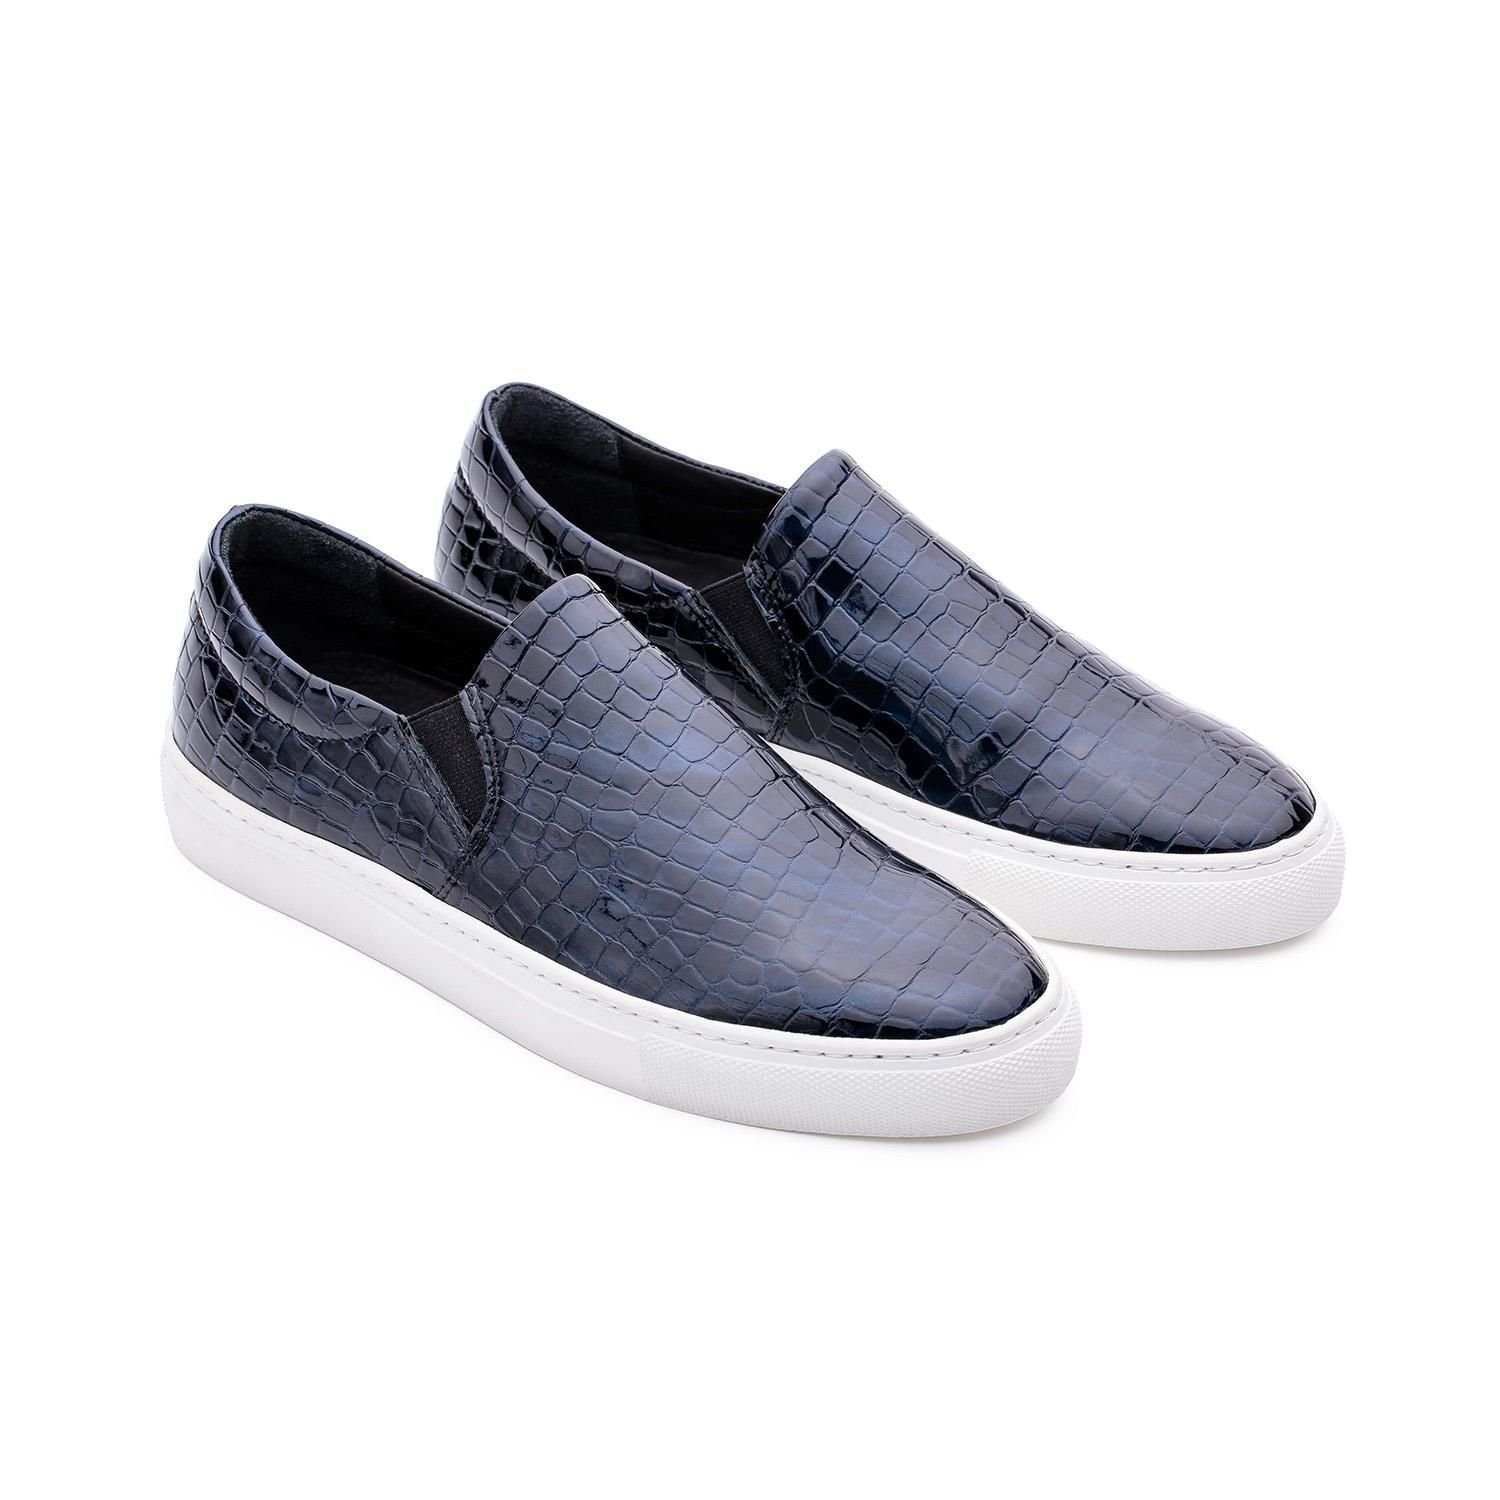 Sapatos Saddle Sneakers Bouchamaoui.